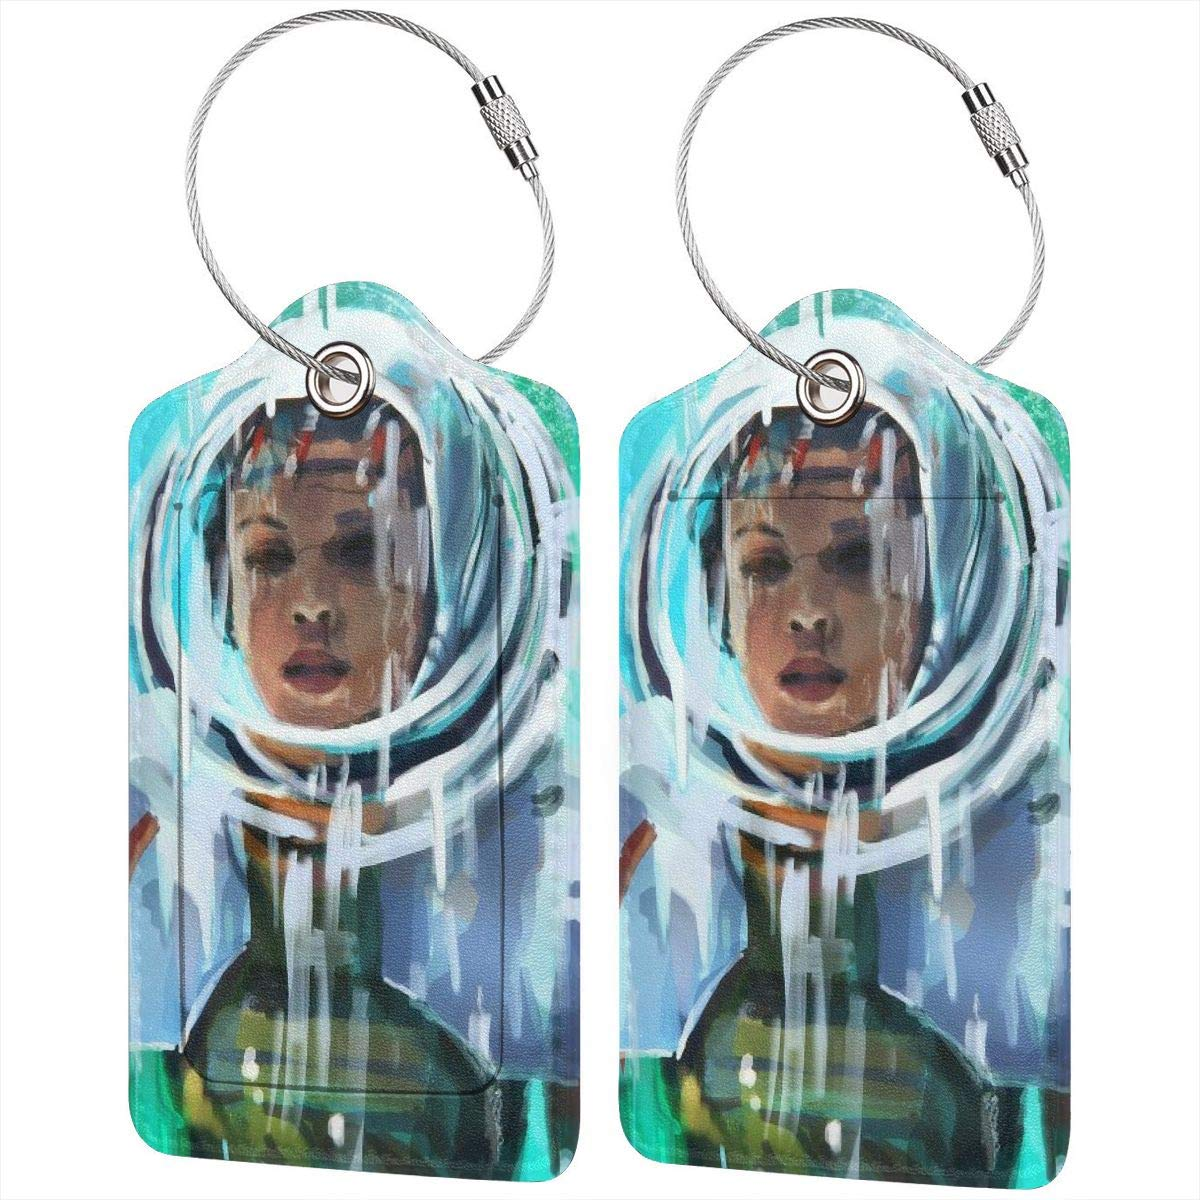 Astronaut Woman Luggage Tag Label Travel Bag Label With Privacy Cover Luggage Tag Leather Personalized Suitcase Tag Travel Accessories